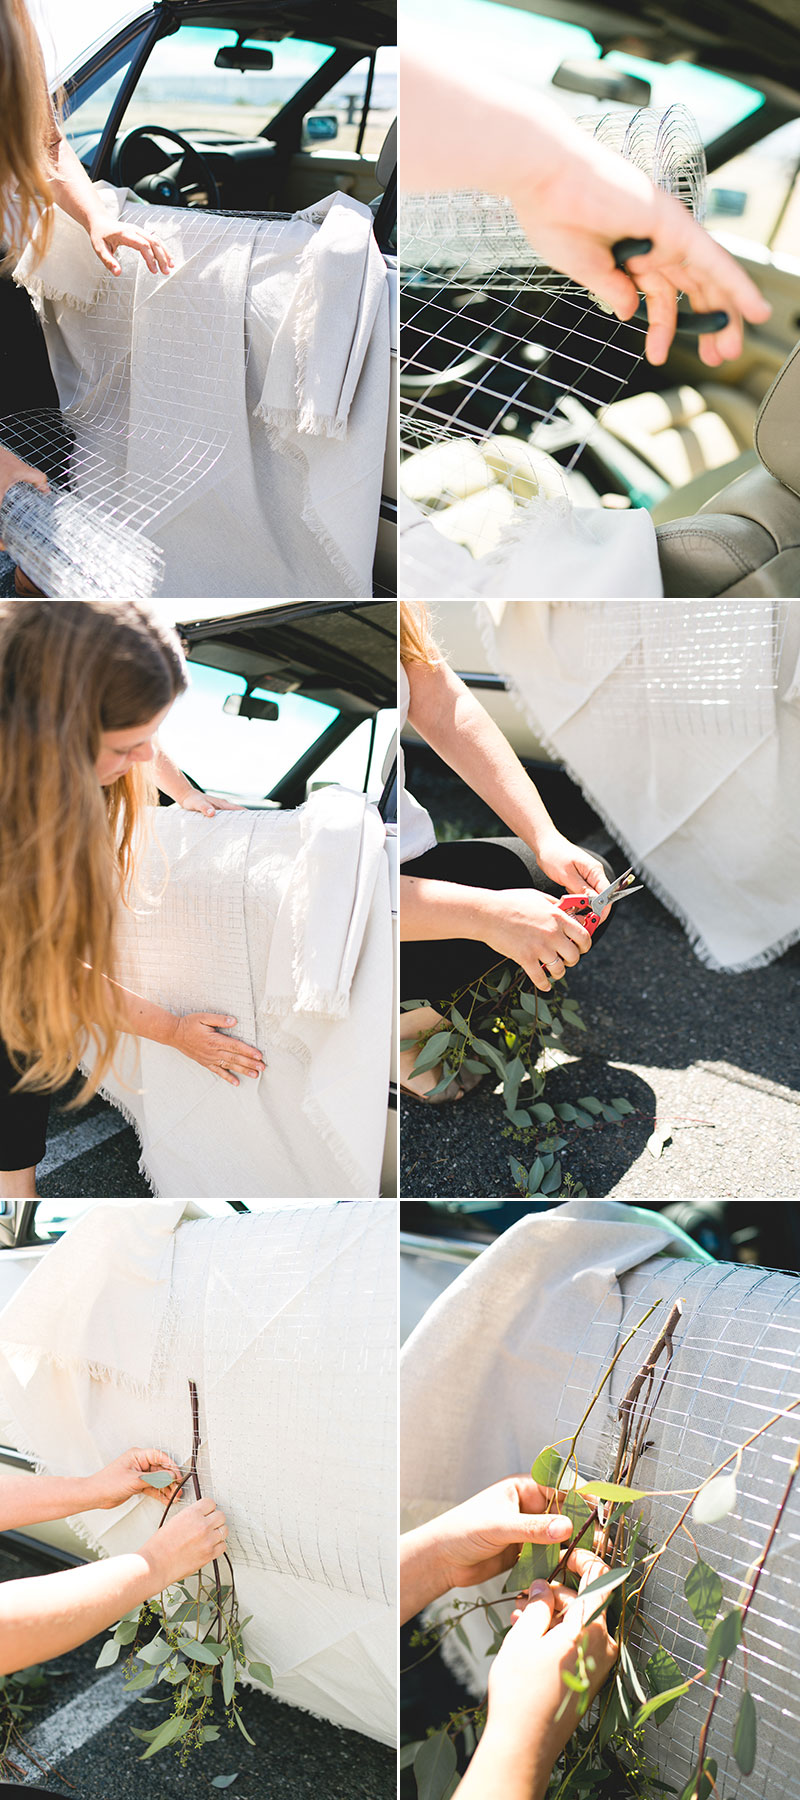 Ombré Peony Floral Installation in a Vintage BMW car. DIY and craft tutorial. Tips for shopping for peonies, arrangement peonies, how to care for peonies.  #vintagecar #peonies #floralinstallation #wedding #getawaycar #weddingcar #peony #peonyarrangement #ombre #rainbow #pinkpeonies